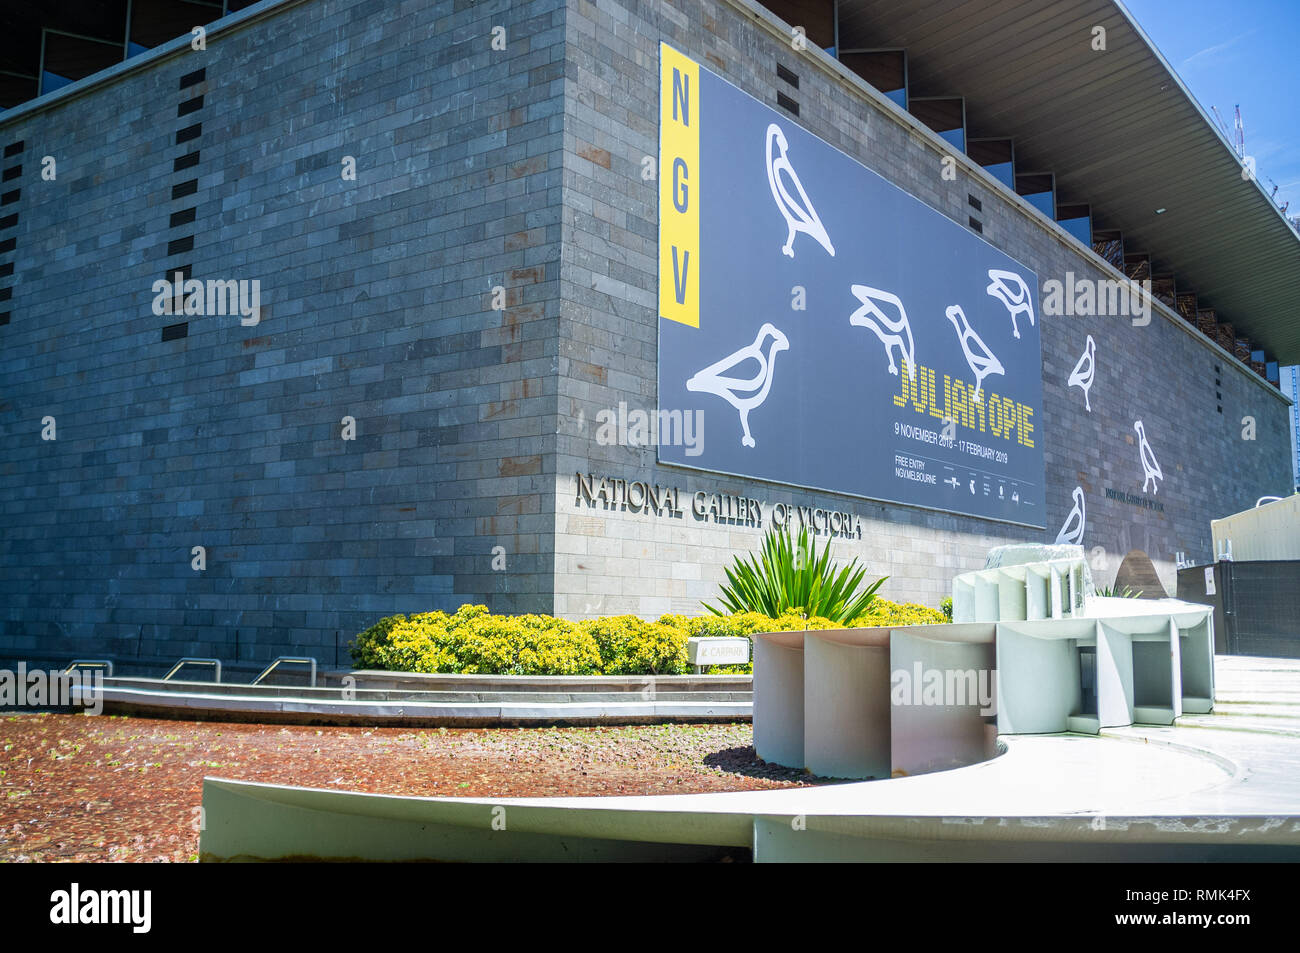 MELBOURNE - DEC 1 2018: National Gallery of Victoria - the oldest and most visited art gallery in Australia - Stock Image